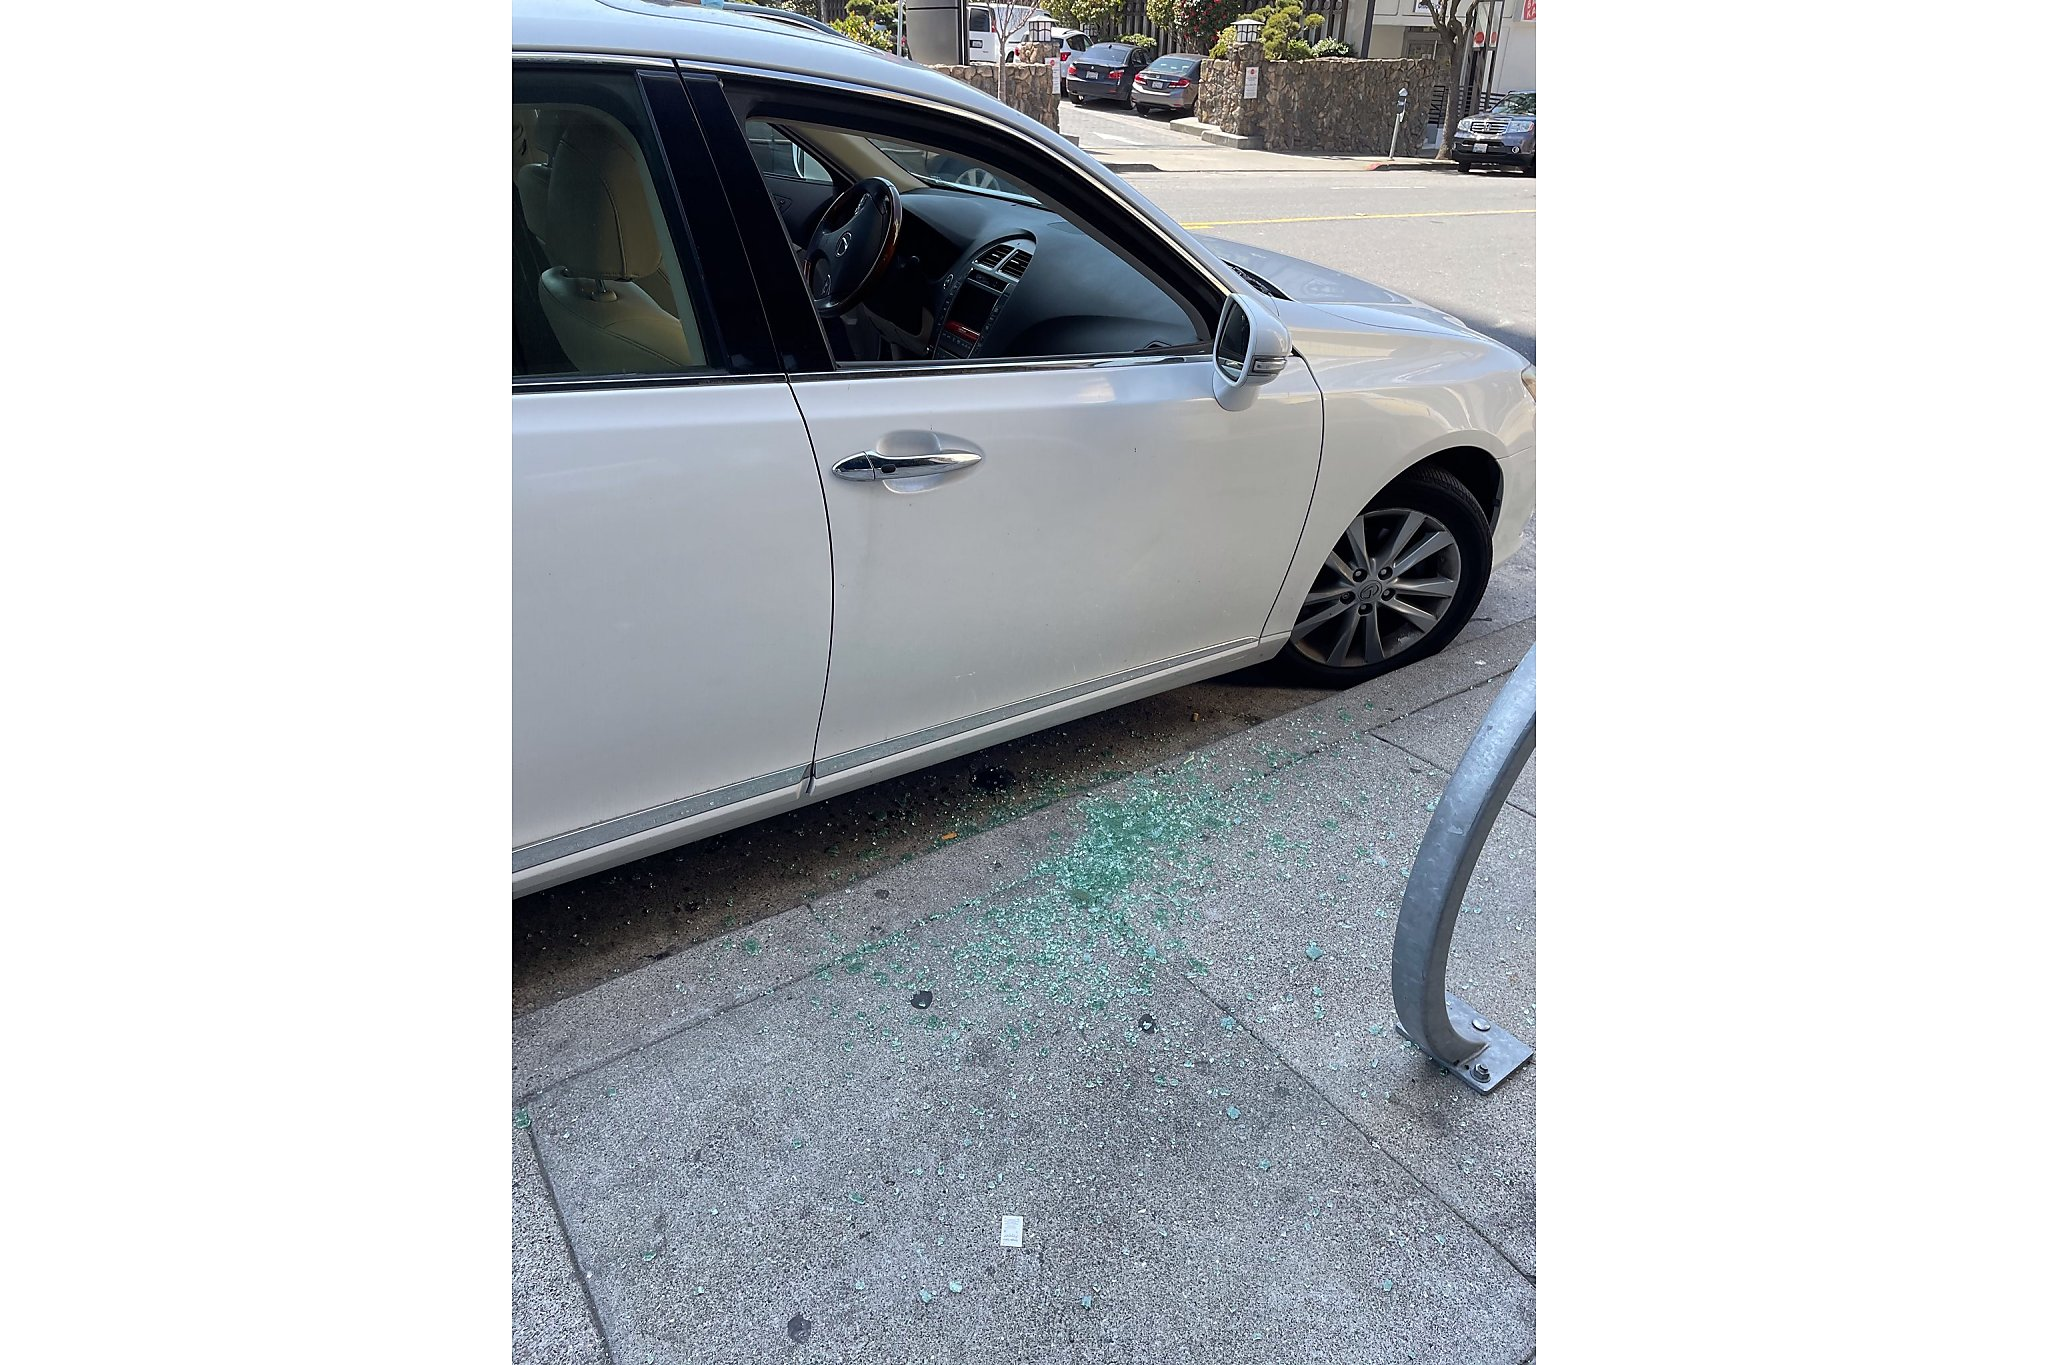 Asian American woman robbed in broad daylight while sitting in her car in S.F.